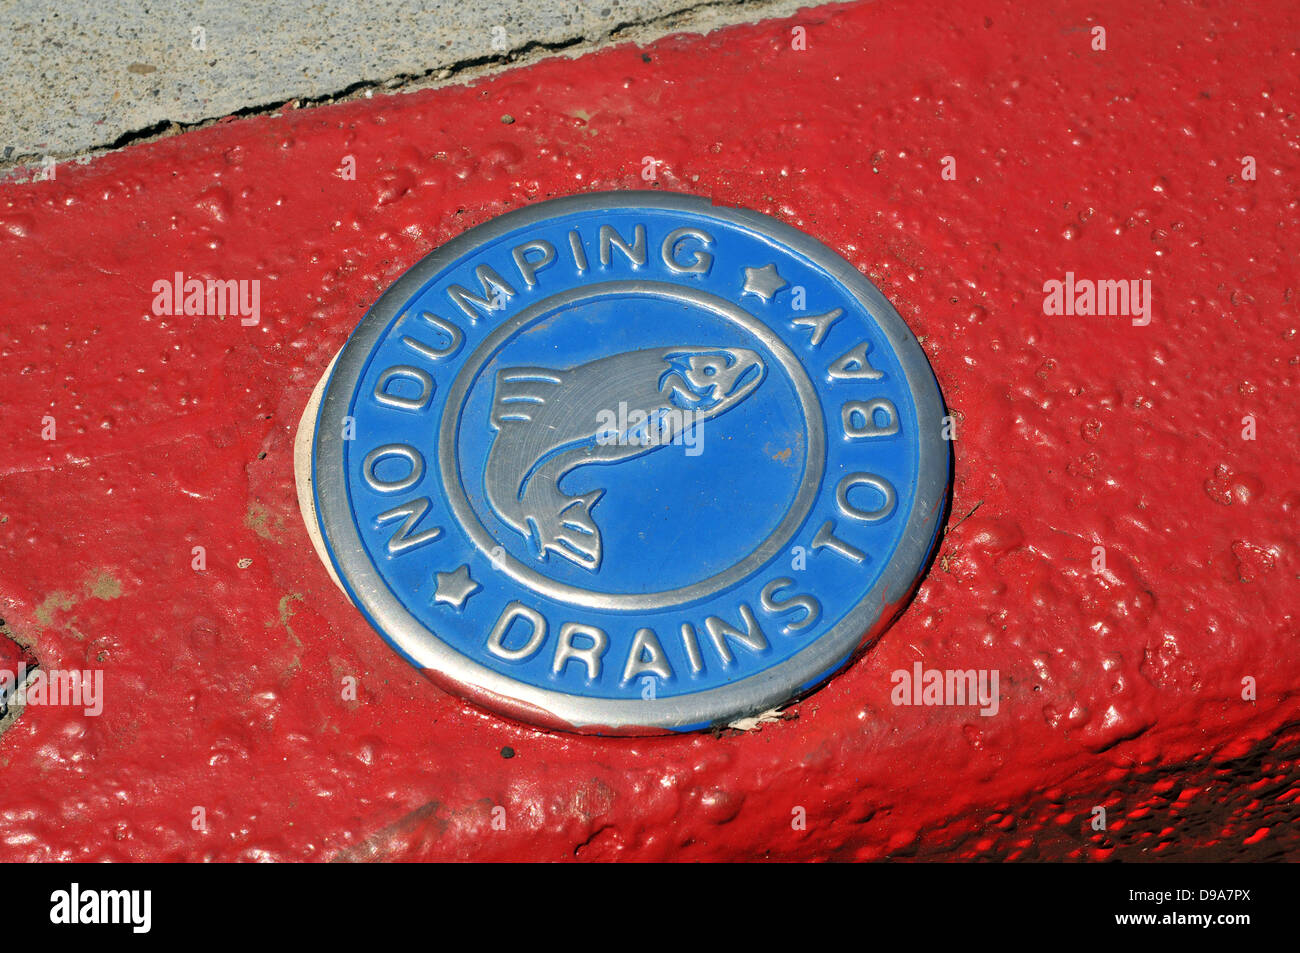 Anti-pollution sign on a sidewalk in Tiburon, California - showing that the culvert drains directly into San Francisco - Stock Image